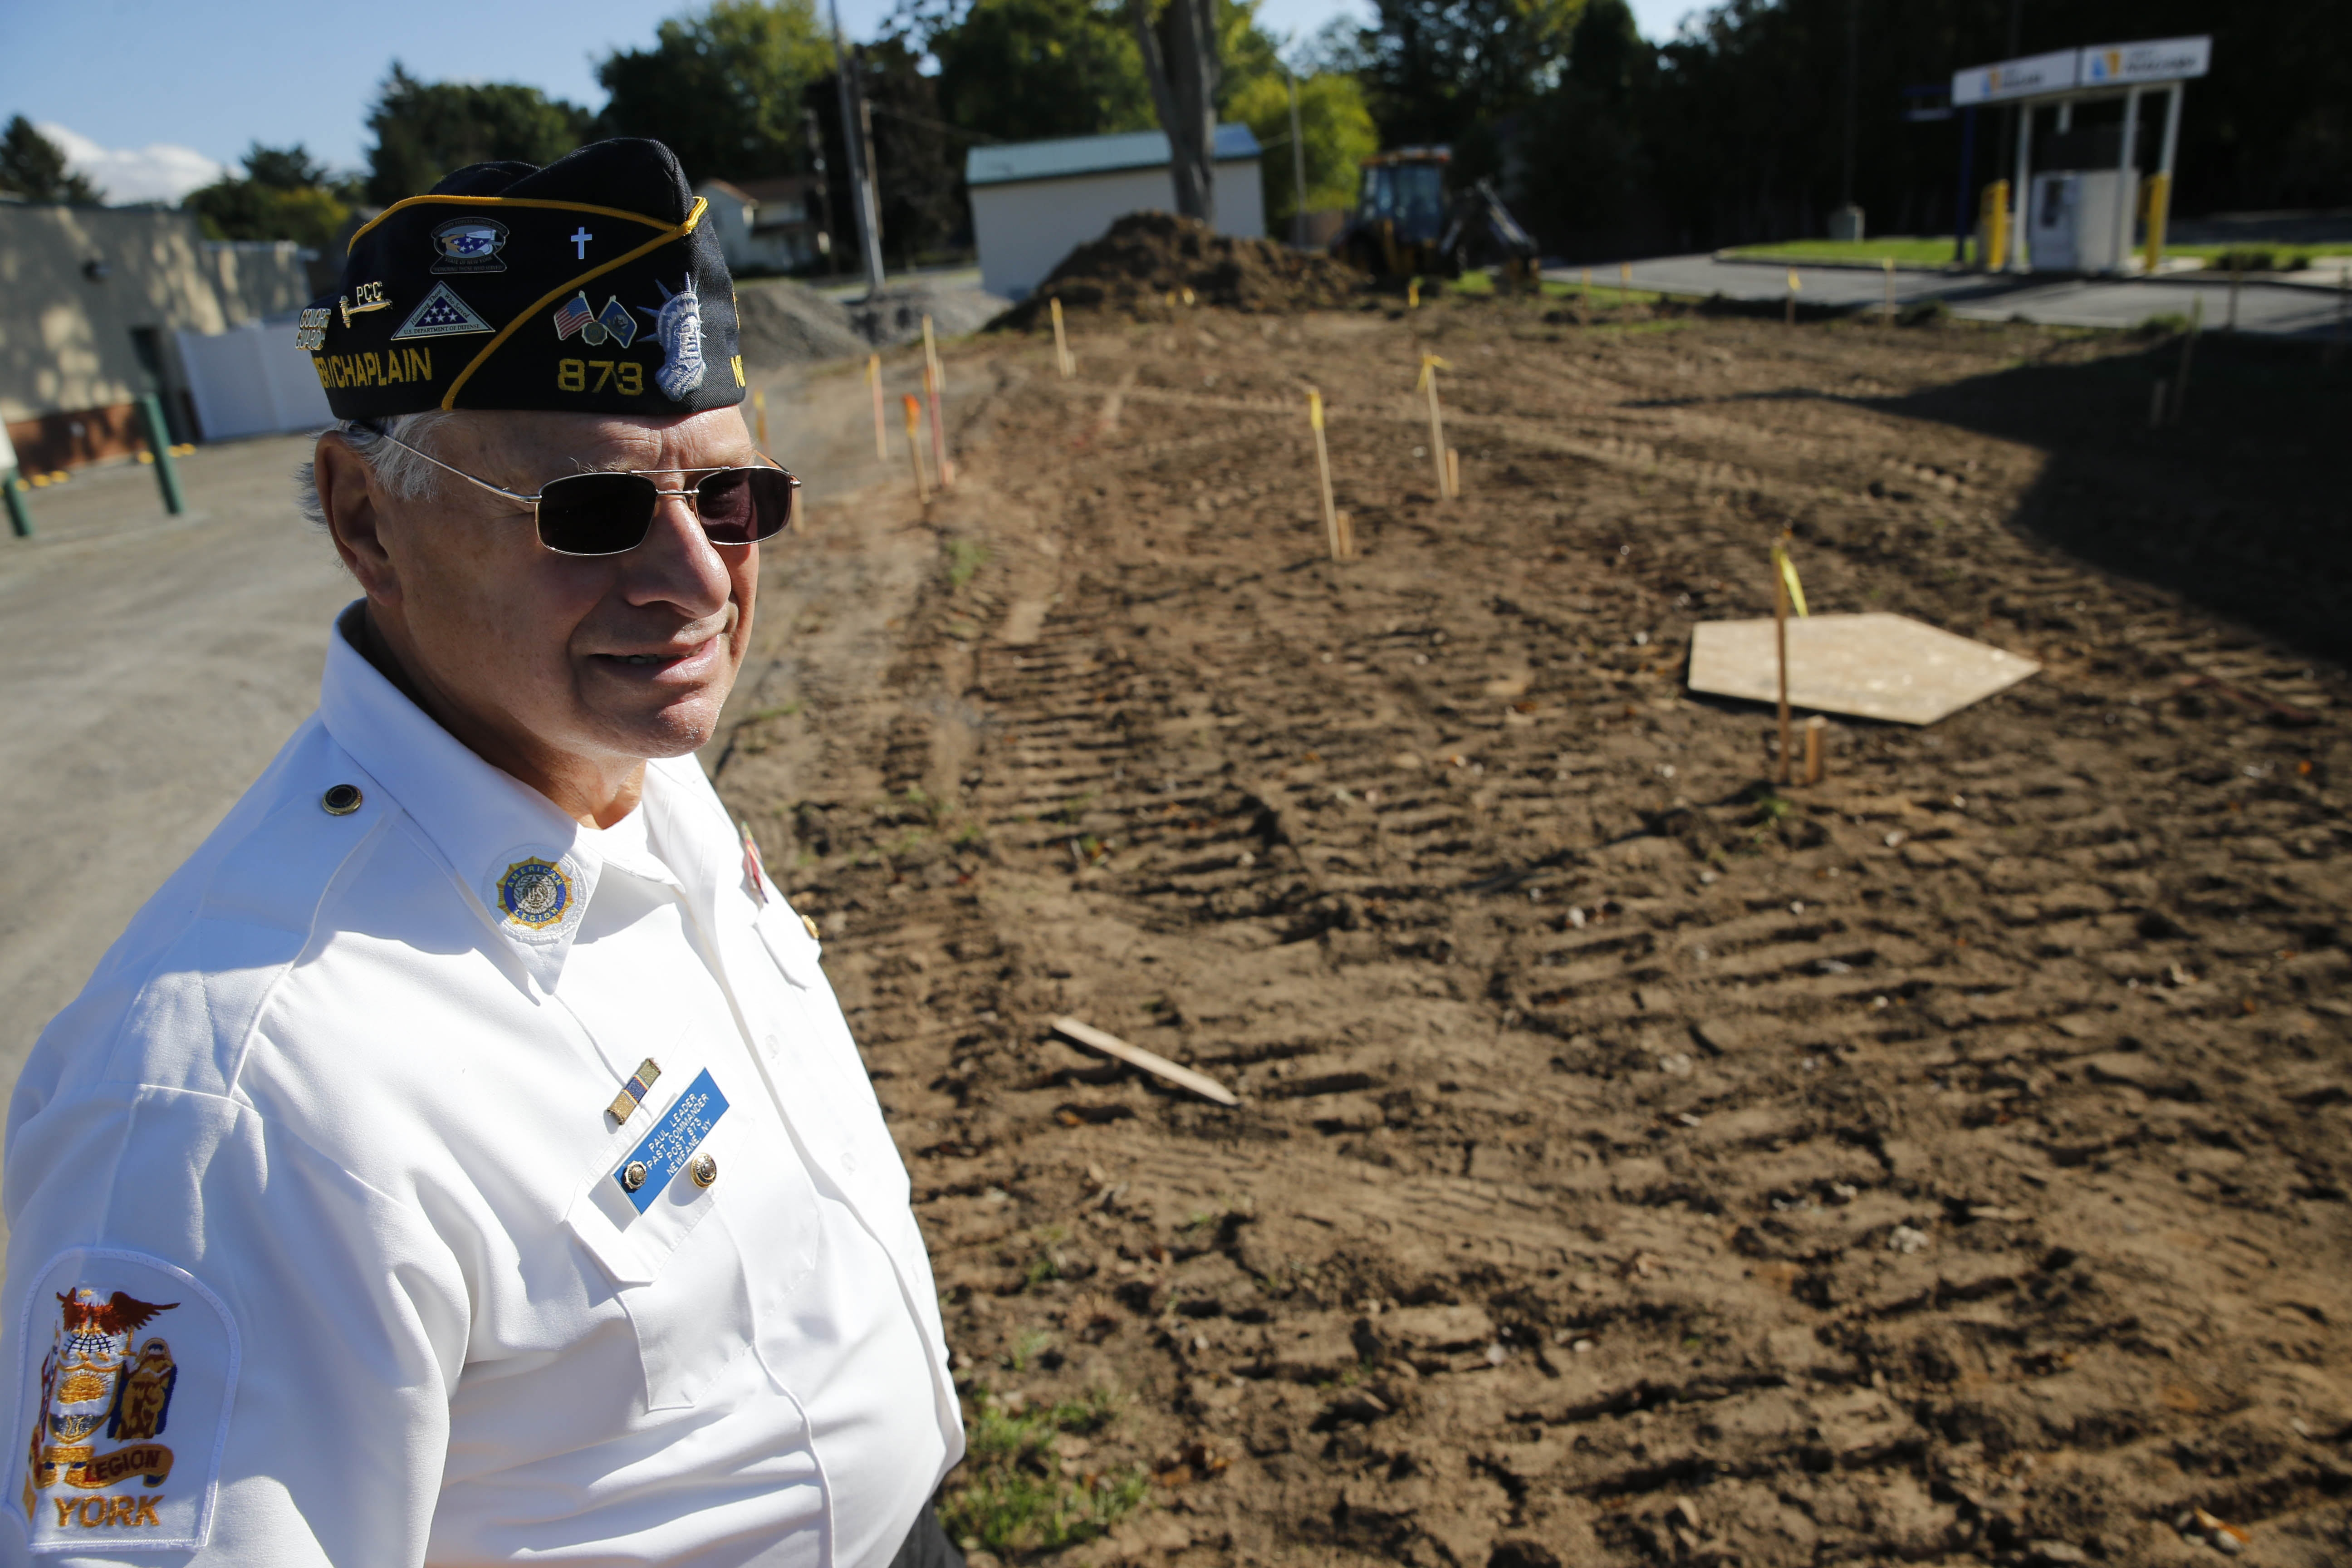 Paul Leader, past commander of the American Legion Post 873, looks over the new veterans park under construction next to Newfane Town Hall on Main Street in Newfane.